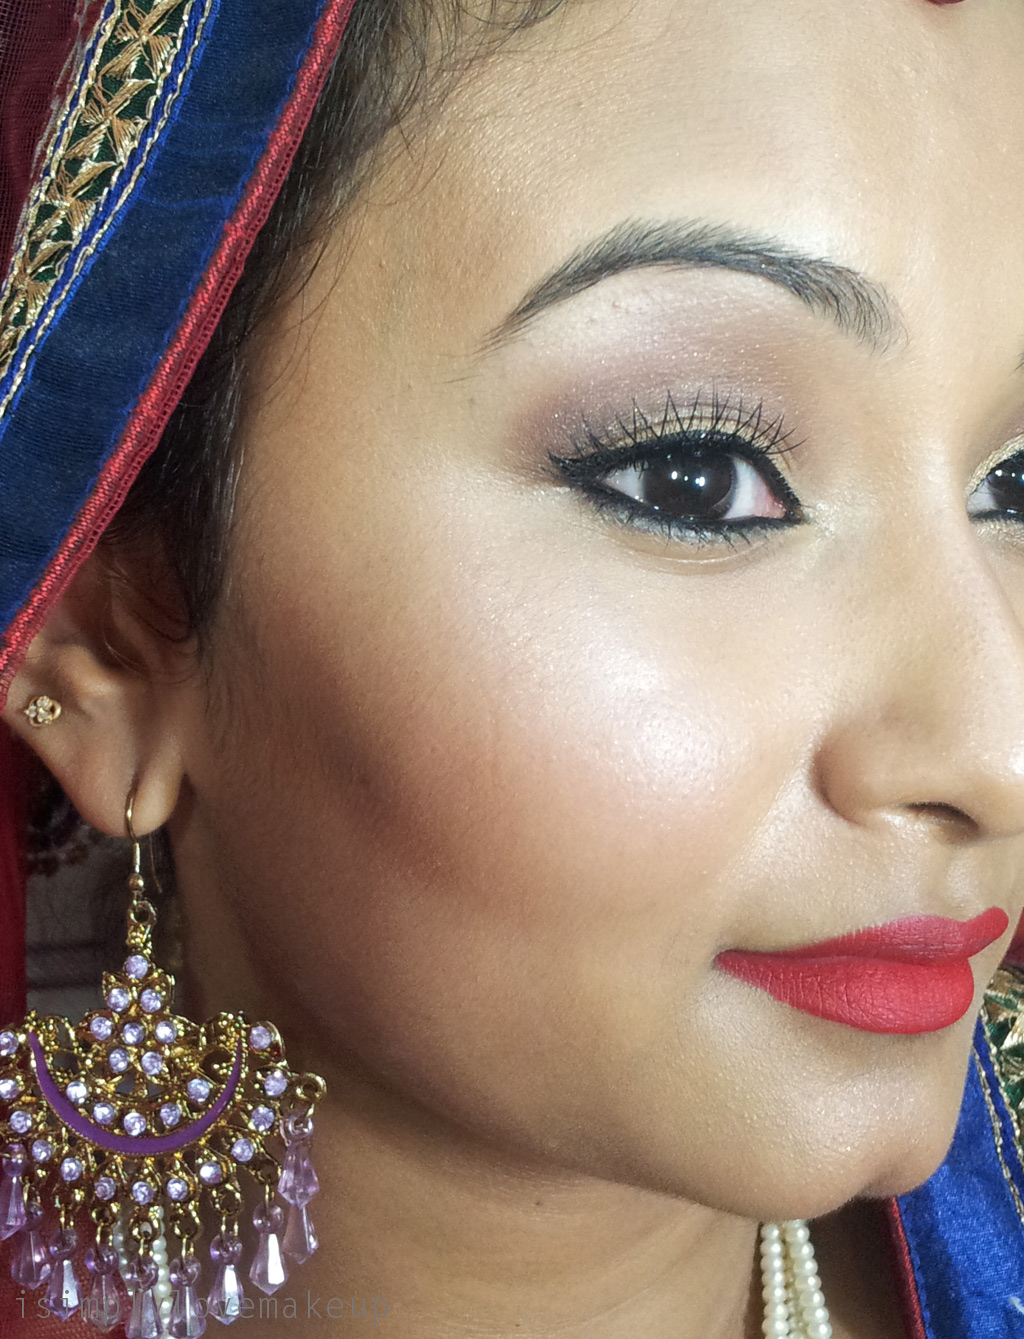 Bridal Makeup Tips And Tricks : Bridal Beauty: Makeup For An Indian (Night) Wedding - Tips ...